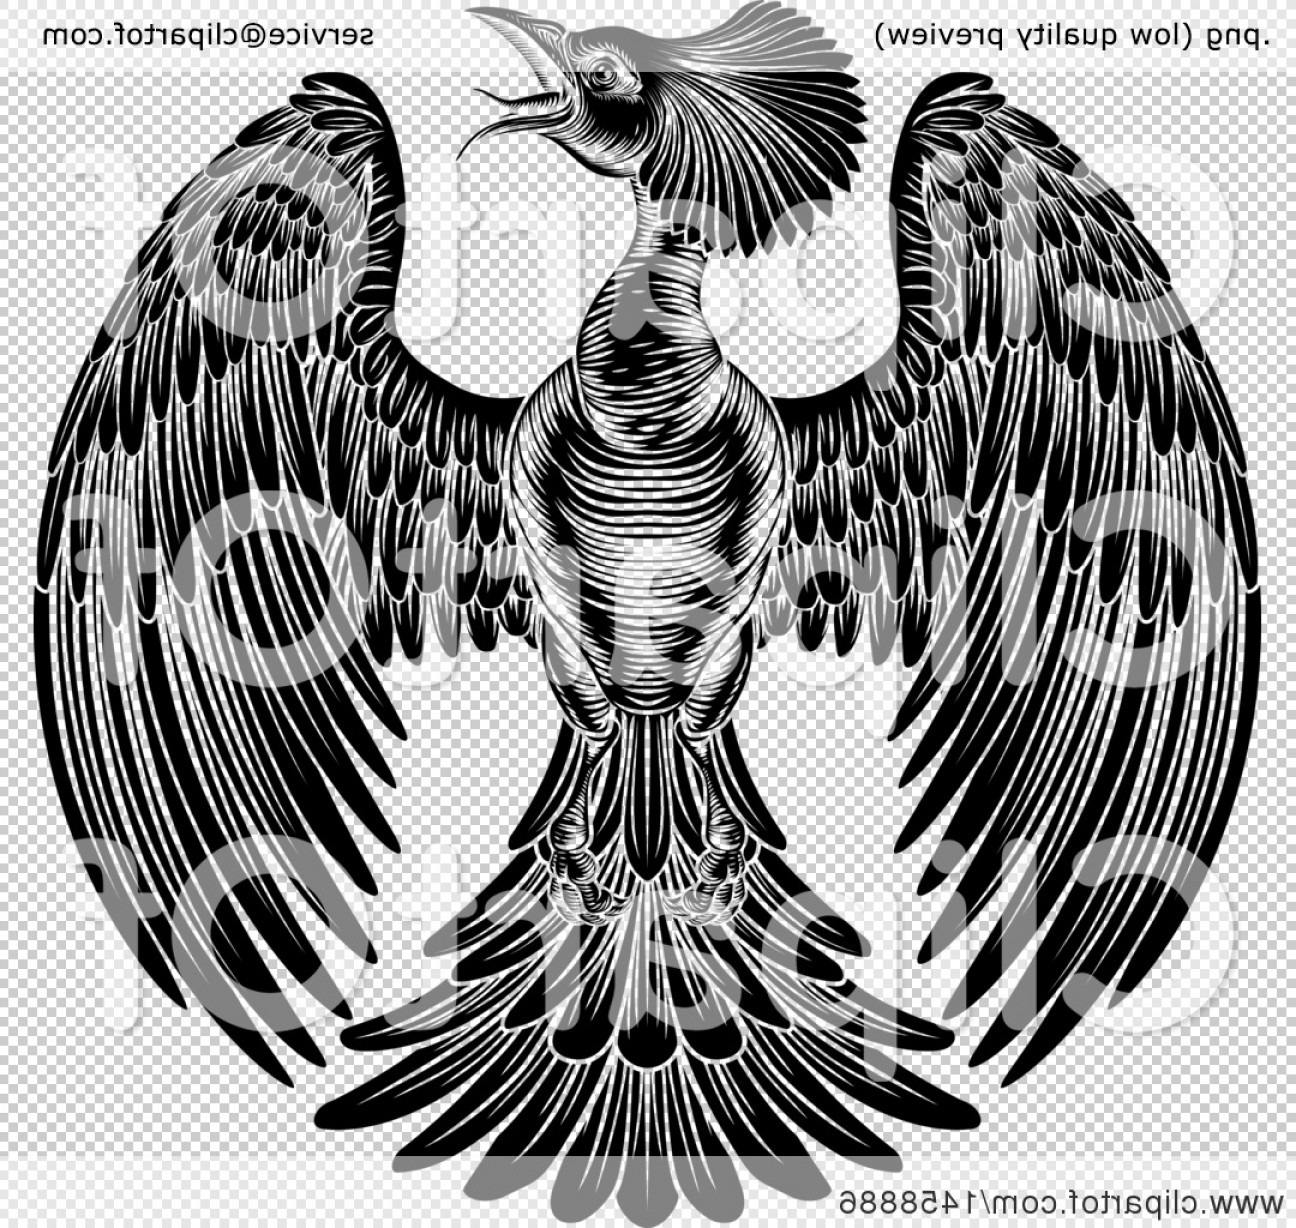 Firebird Vector Transparent Background: Black And White Woodcut Or Engraved Phoenix Firebird